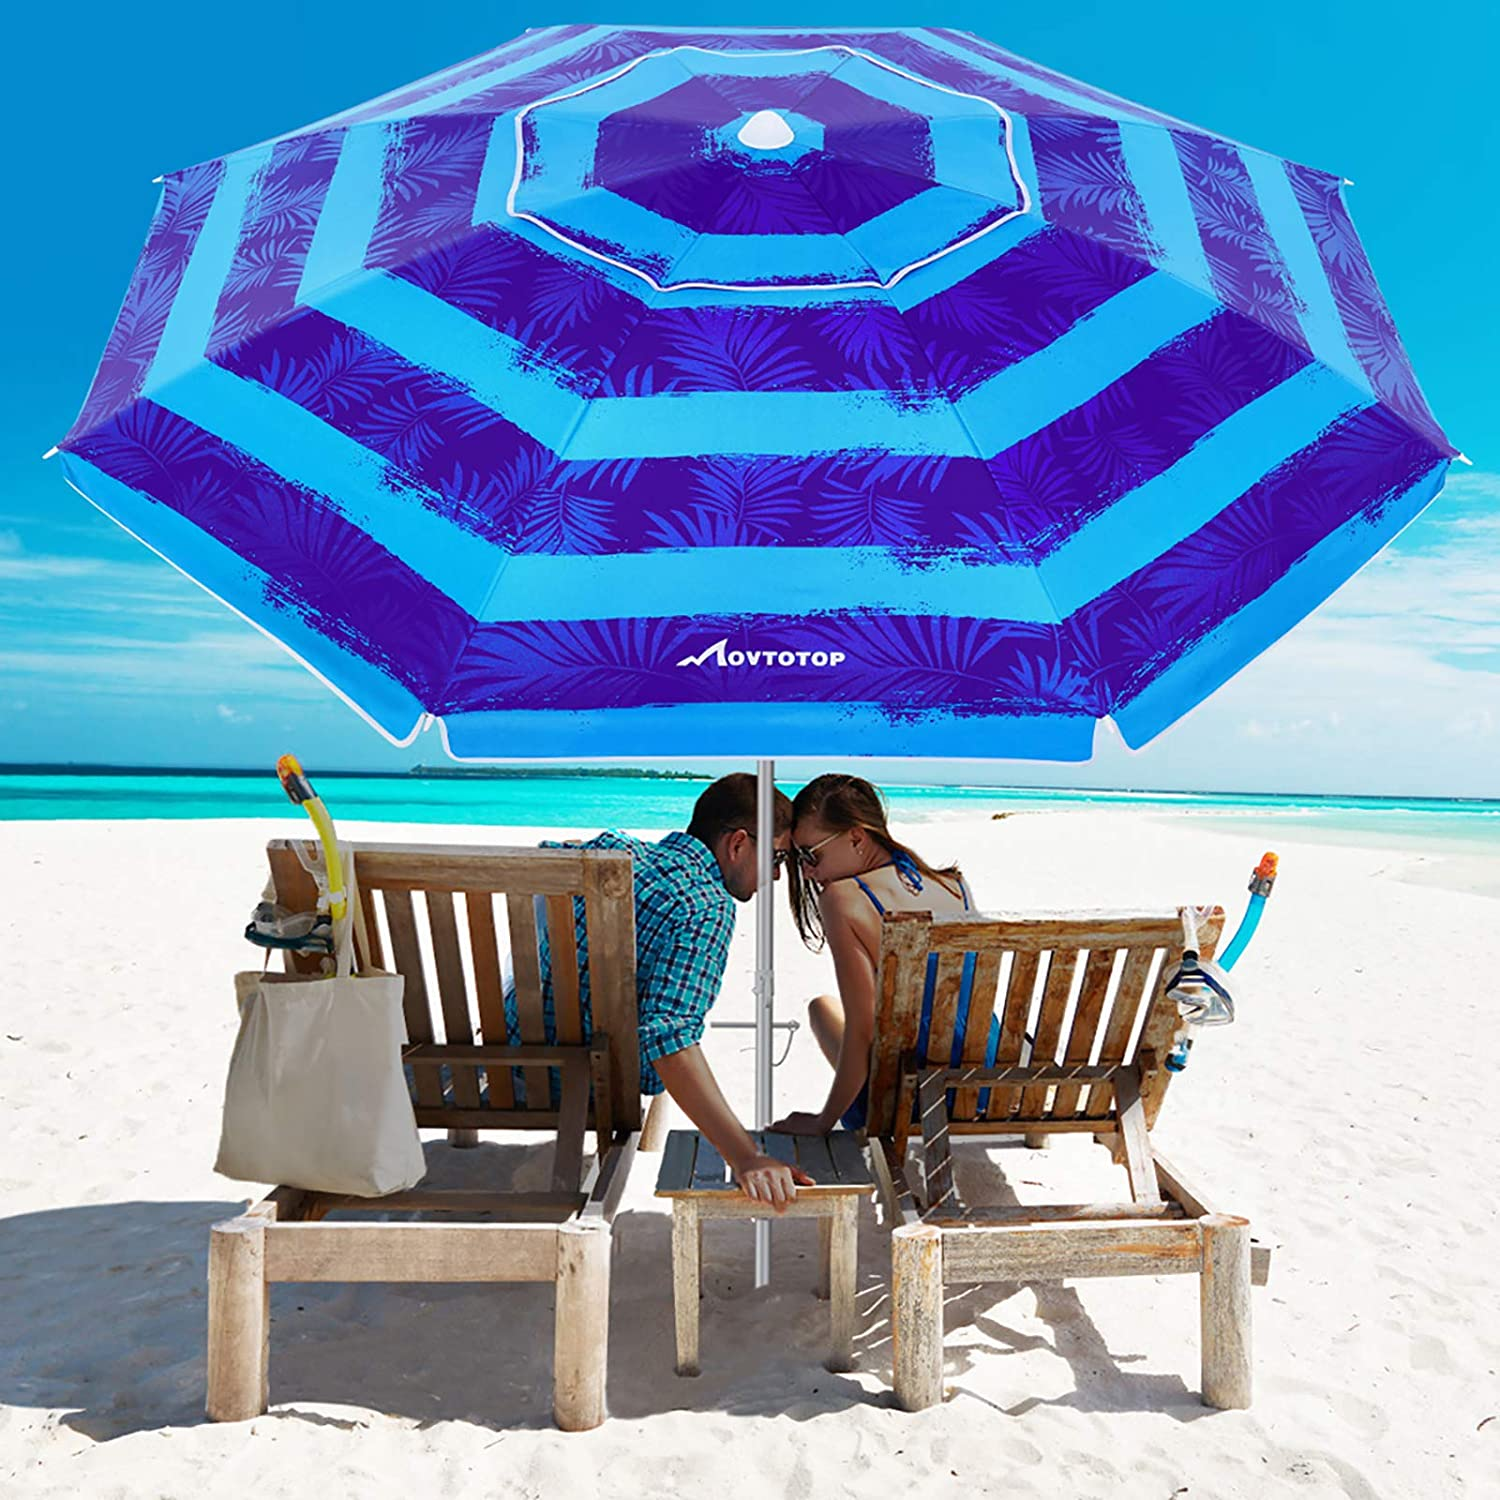 MOVTOTOP Beach Umbrella 6.5ft Patio Umbrella with UV 50 Windproof Beach Umbrella with Portable Carry Bag for Outdoor Travel Protection Sand Anchor and Tiltable Aluminum Pole